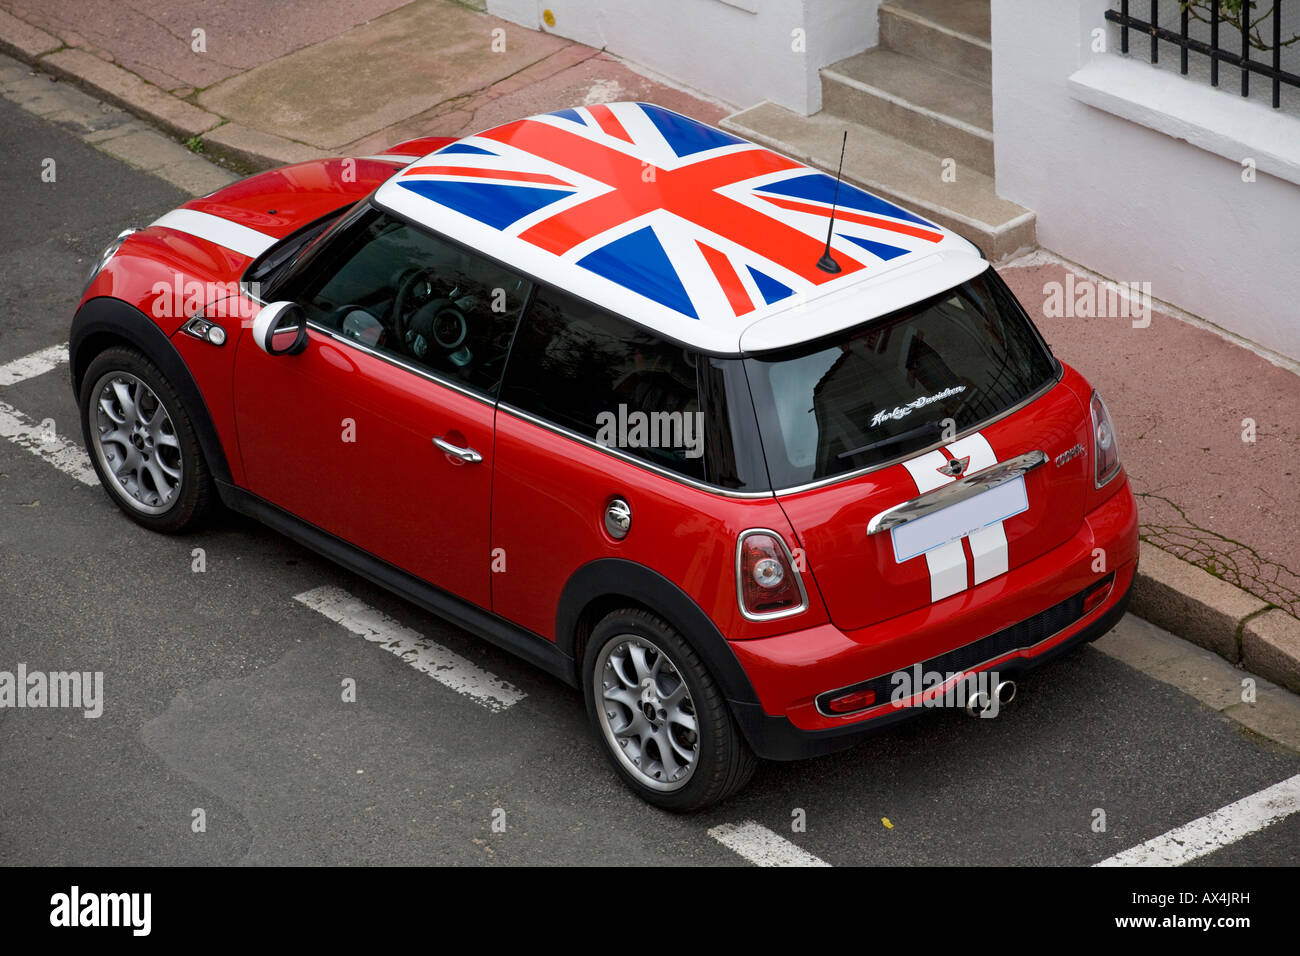 ein exemplar eines austin mini cooper s boliden mit den. Black Bedroom Furniture Sets. Home Design Ideas